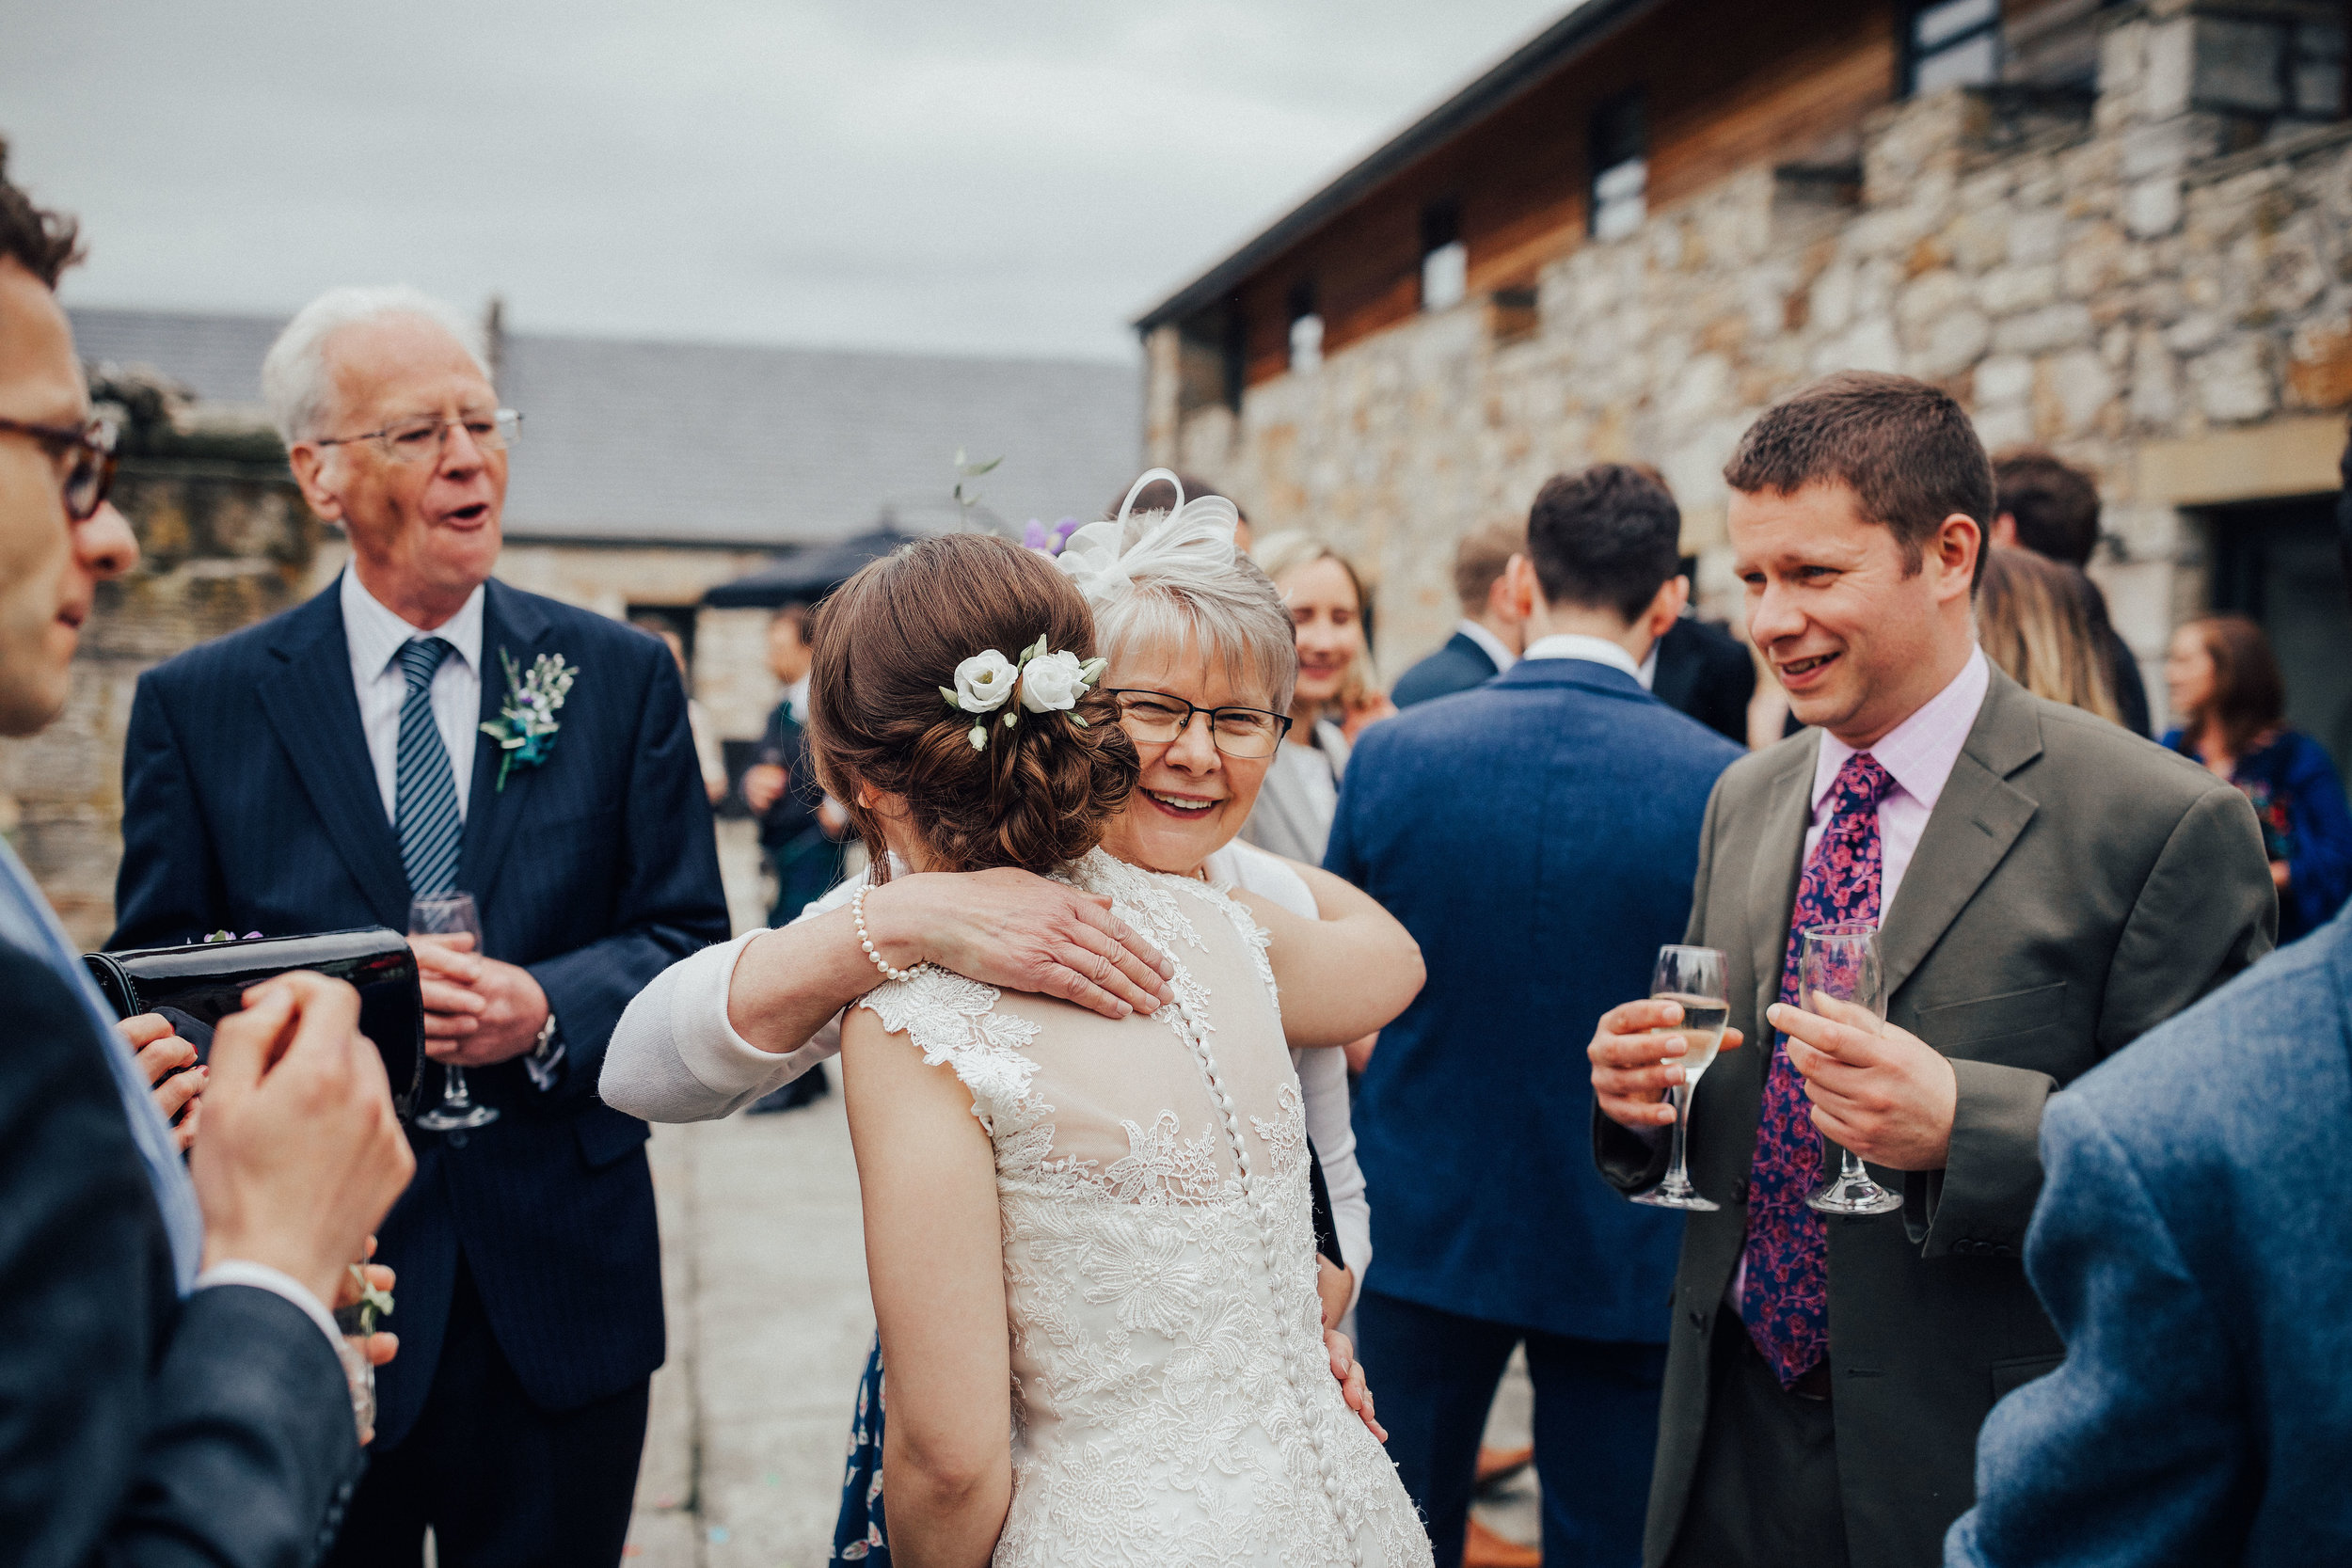 WINDMILL_BARN_DUNFERMLINE_WEDDING_PJ_PHILLIPS_PHOTOGRAPHY_113.jpg